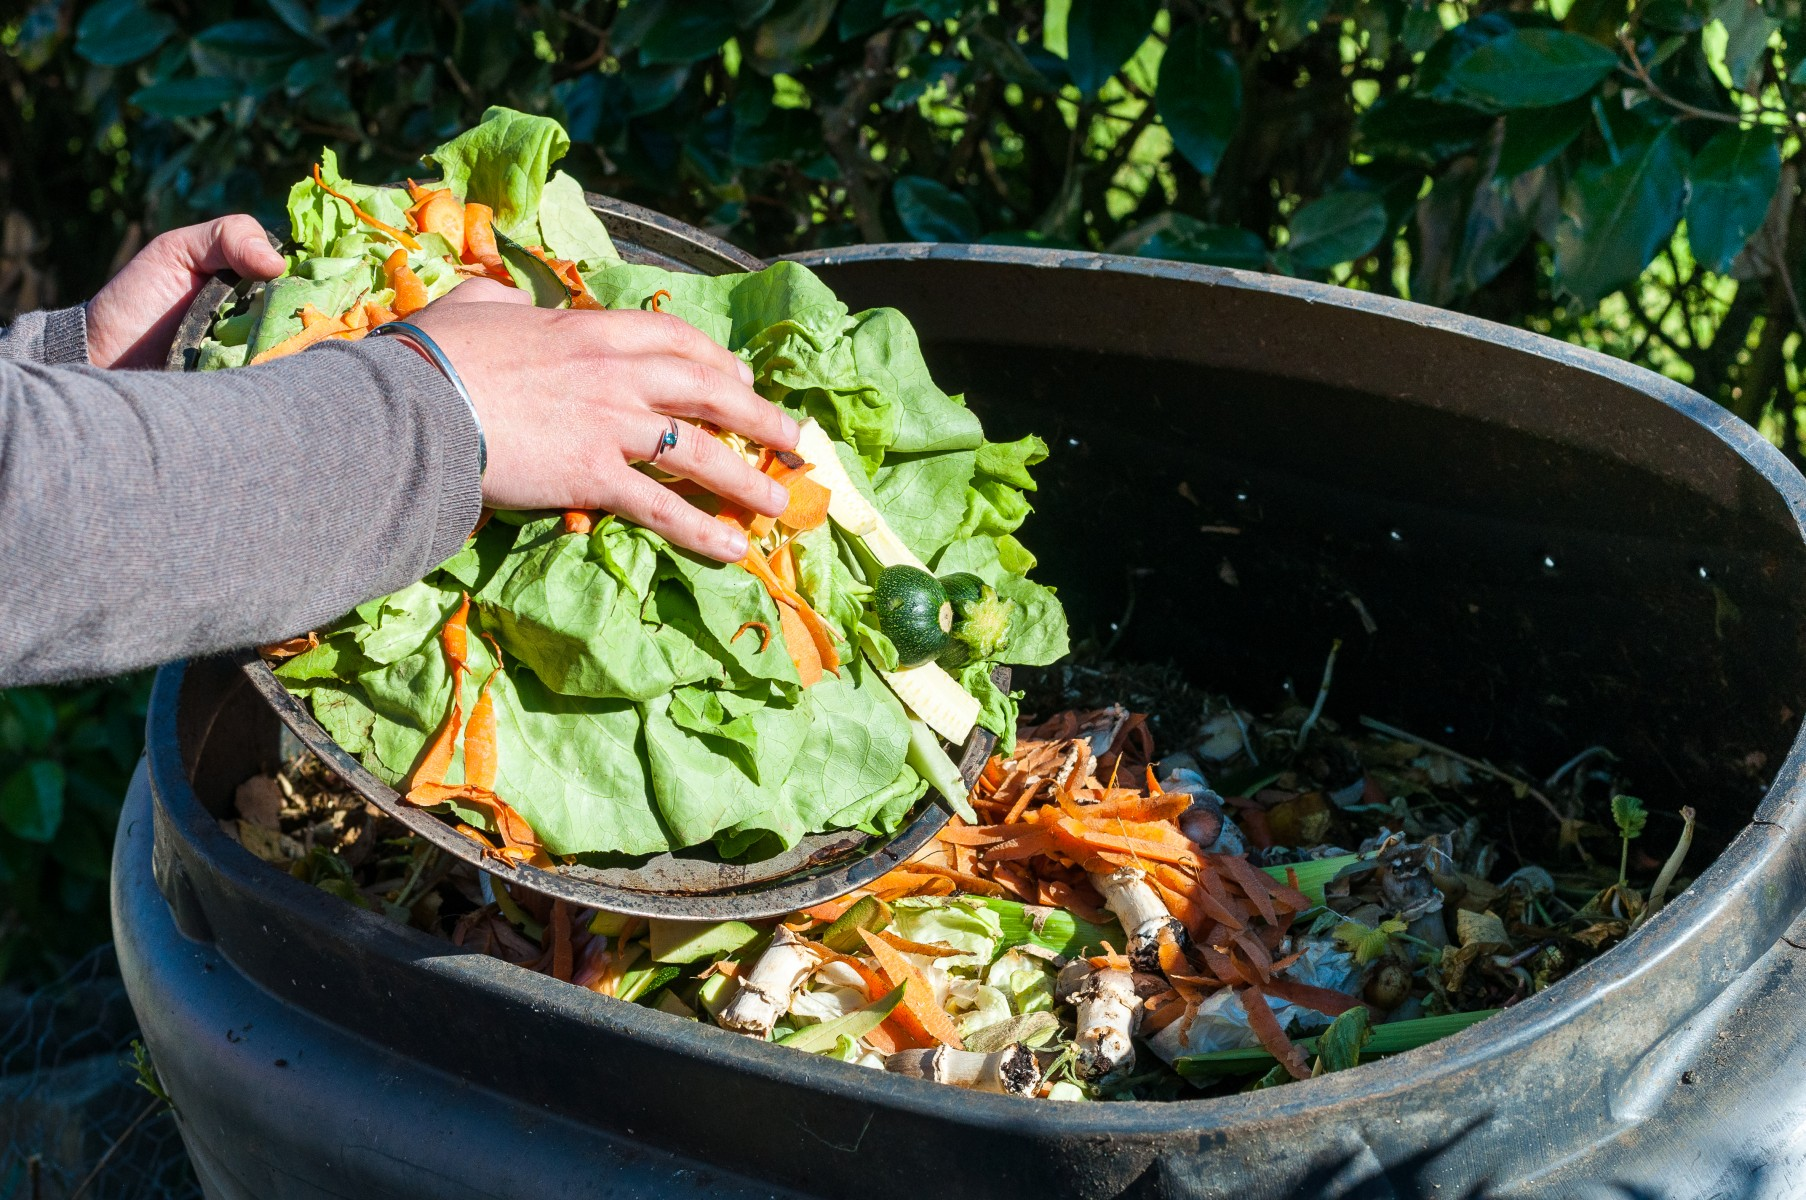 utilization of biodegradable kitchen wastes into organic This research focuses on the efficient decomposition of organic kitchen wastes using lumbricus terrestris and converting these wastes into organic fertilizer that can compete in terms of nutrient content with other organic fertilizers.